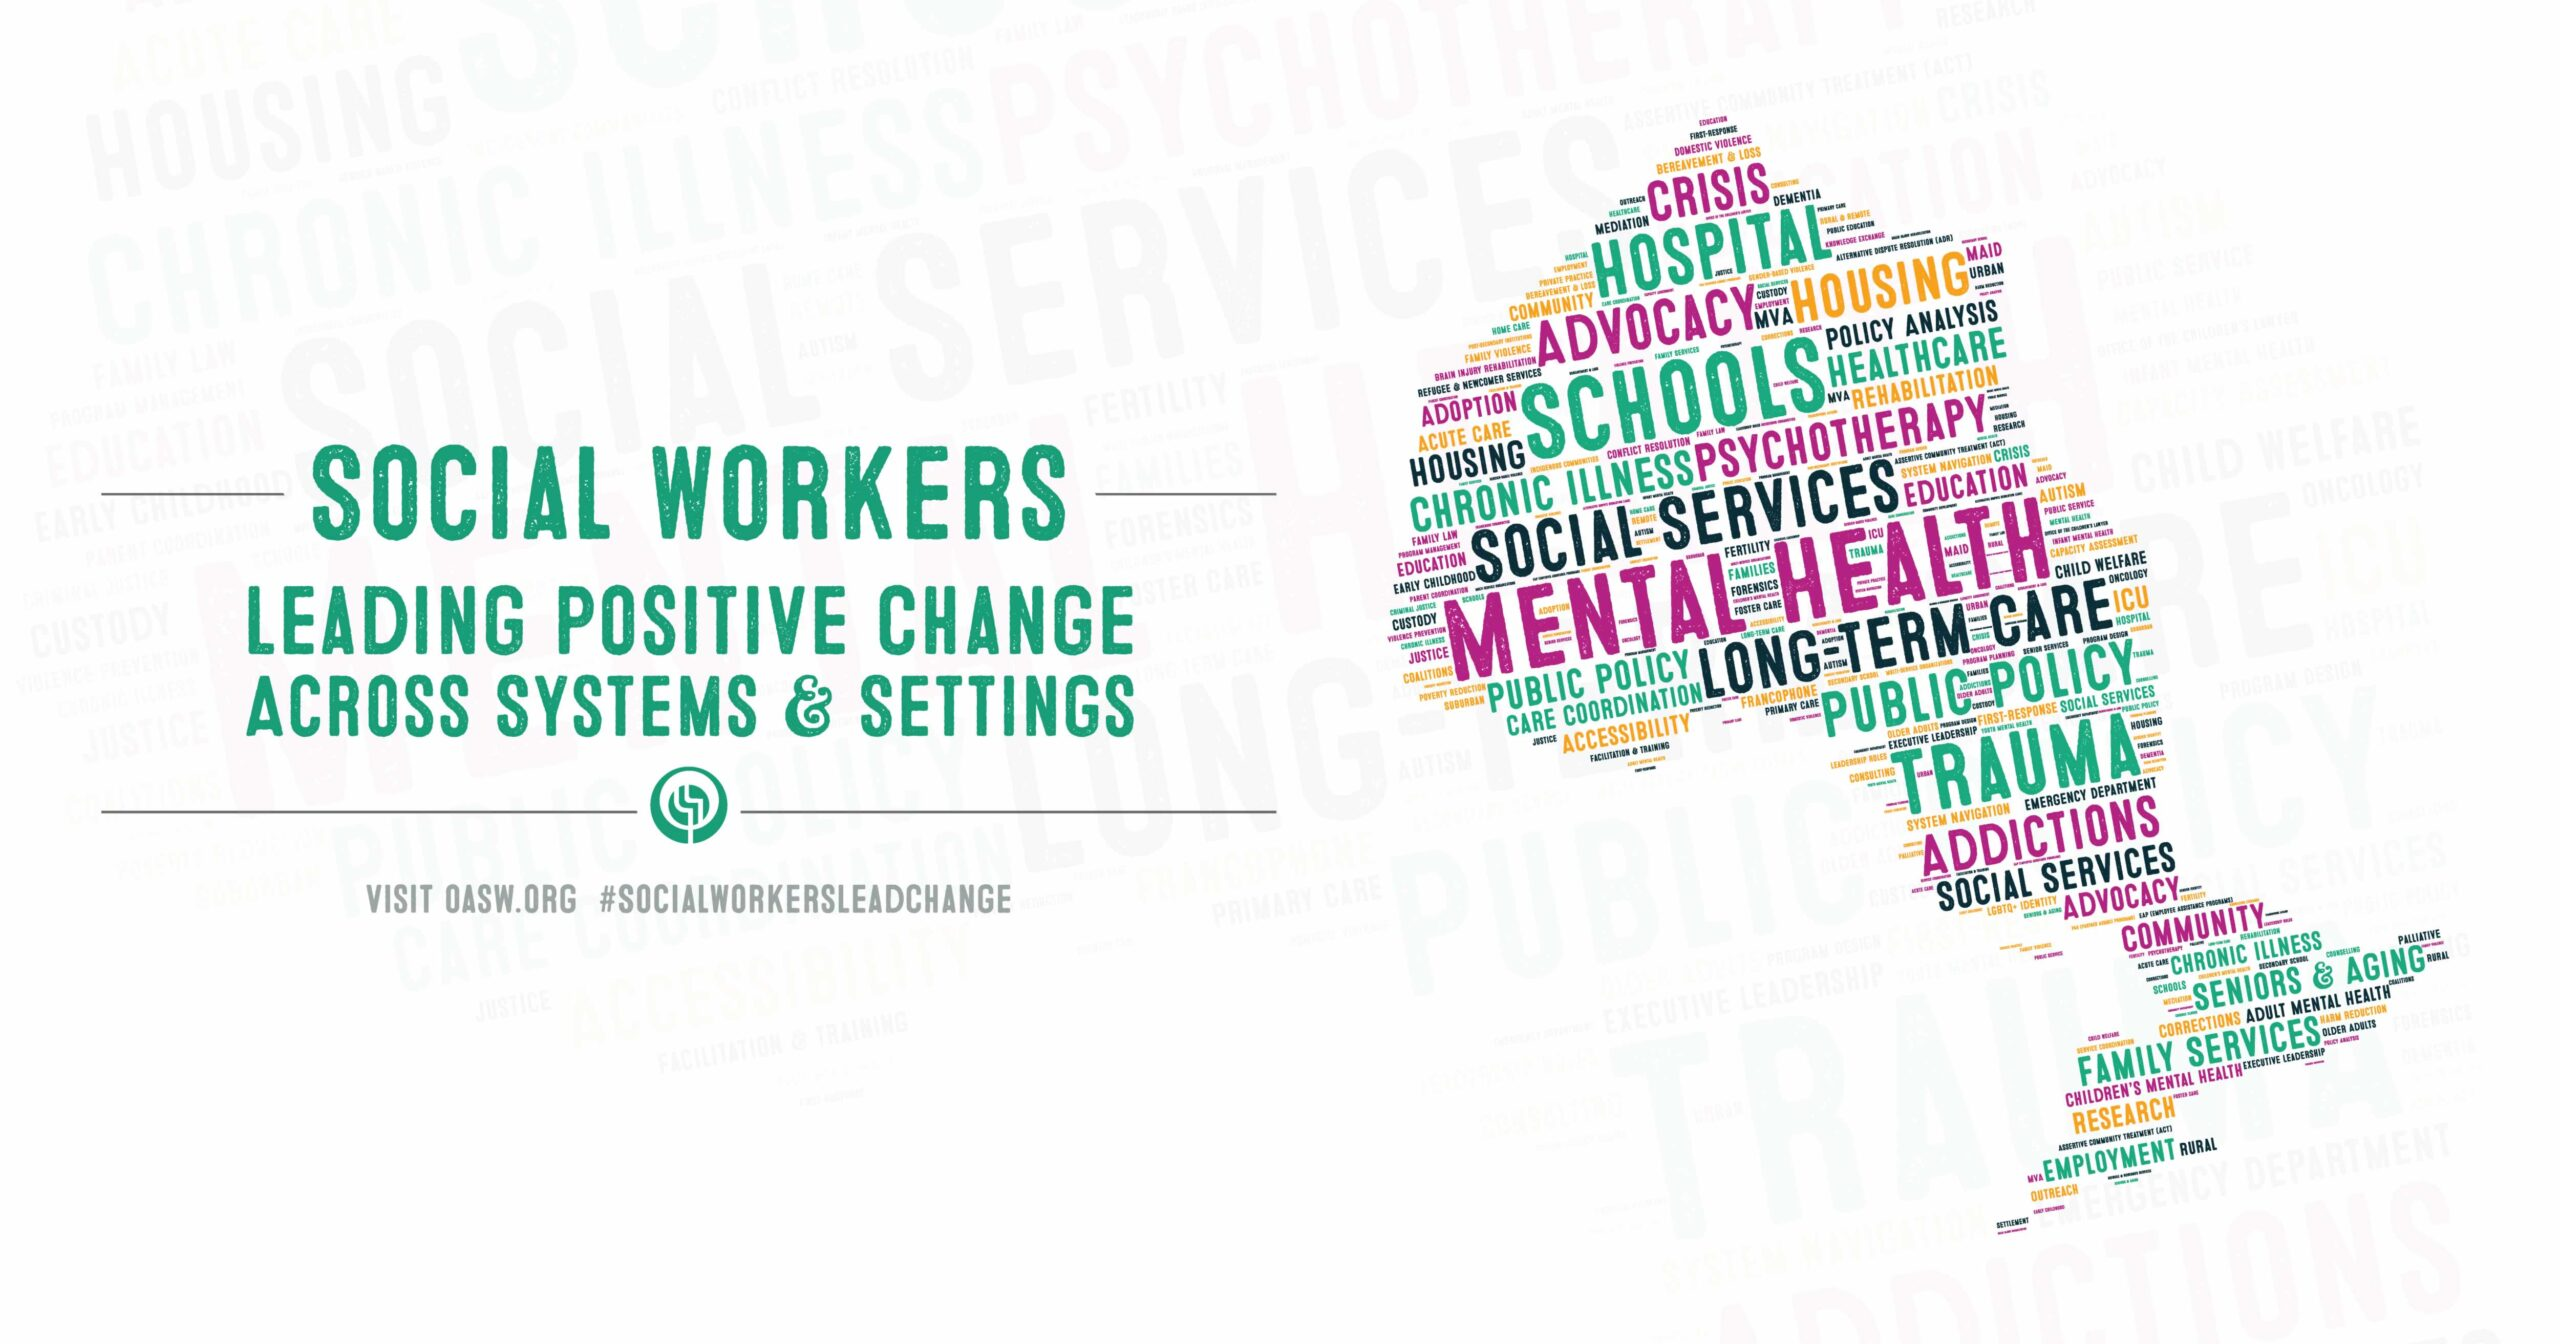 Social workers leading positive change across systems and settings